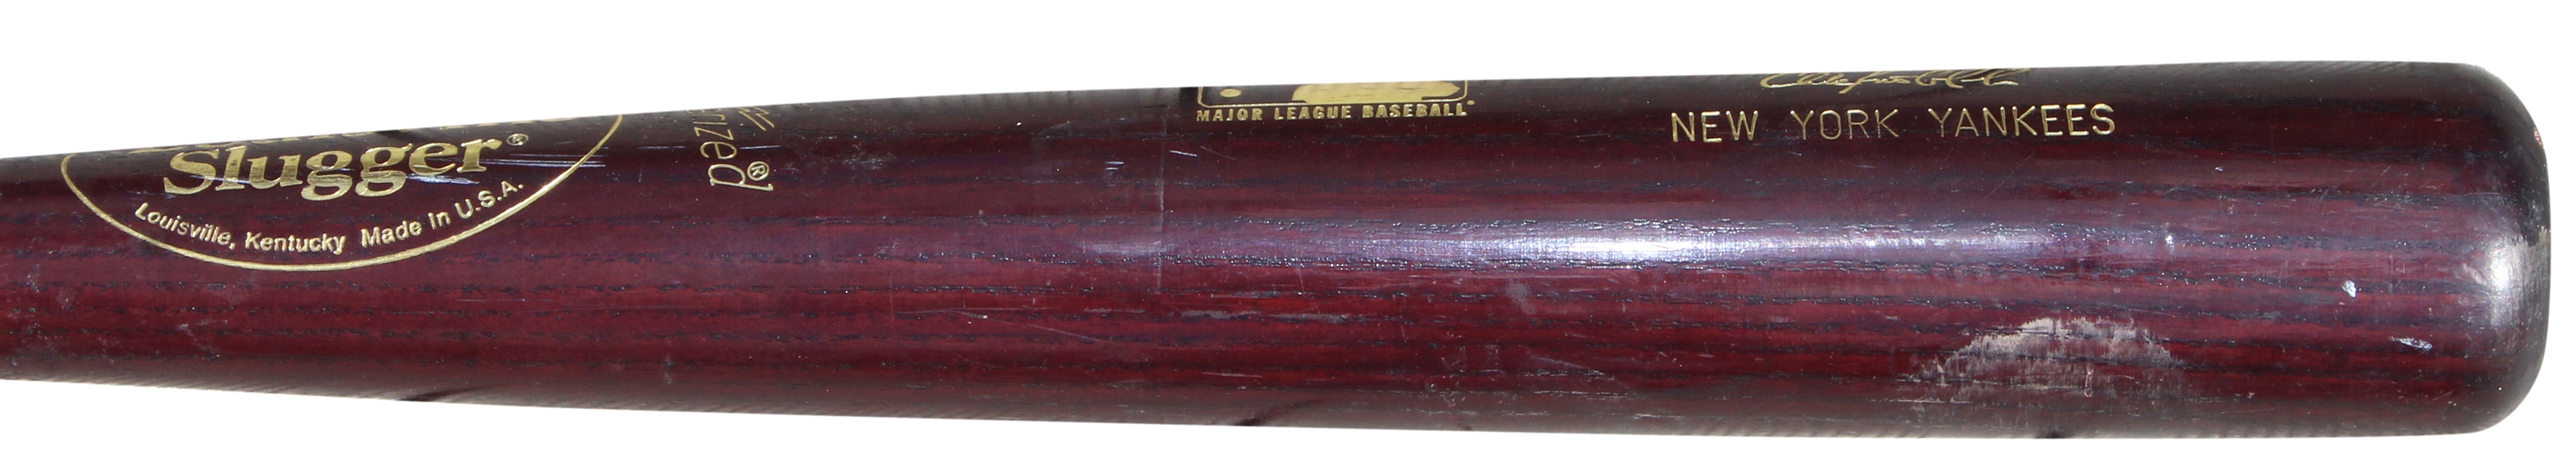 2001 CHUCK KNOBLAUCH GAME USED NEW YORK YANKEES BAT